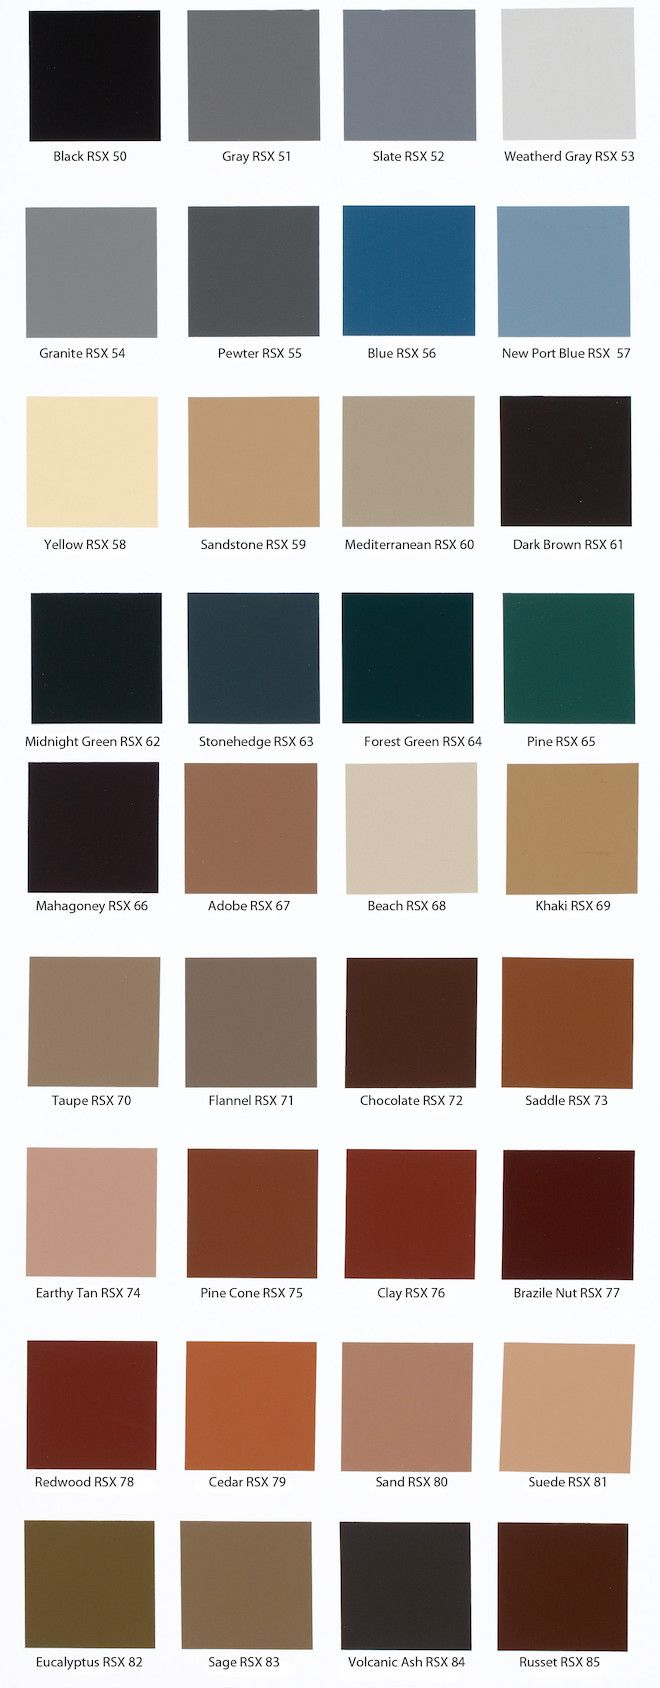 behr solid concrete stain color chart pinteres on behr paint interior color chart id=98889